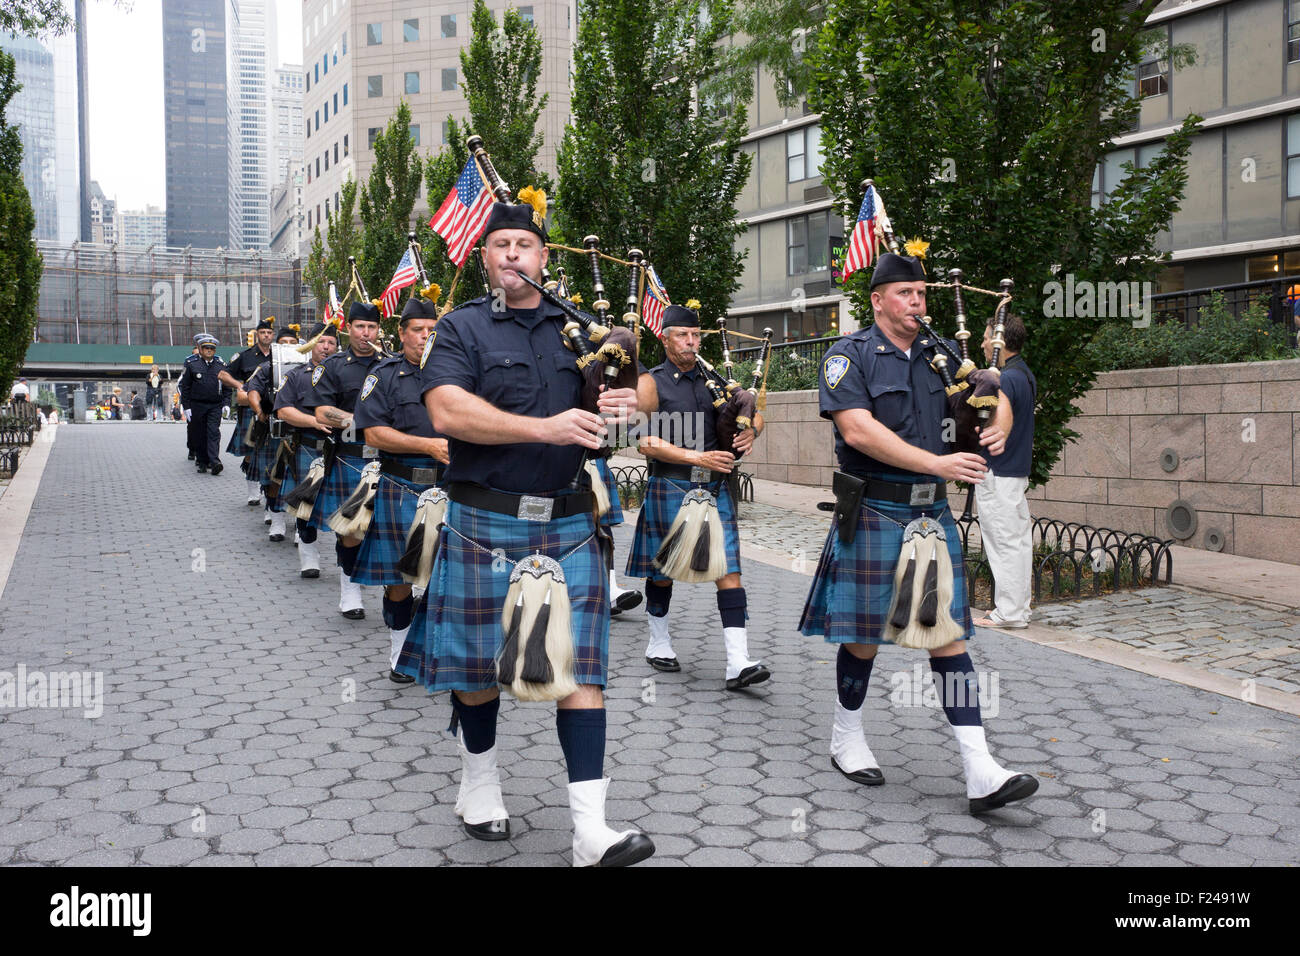 Police Marching Band Stock Photos & Police Marching Band Stock